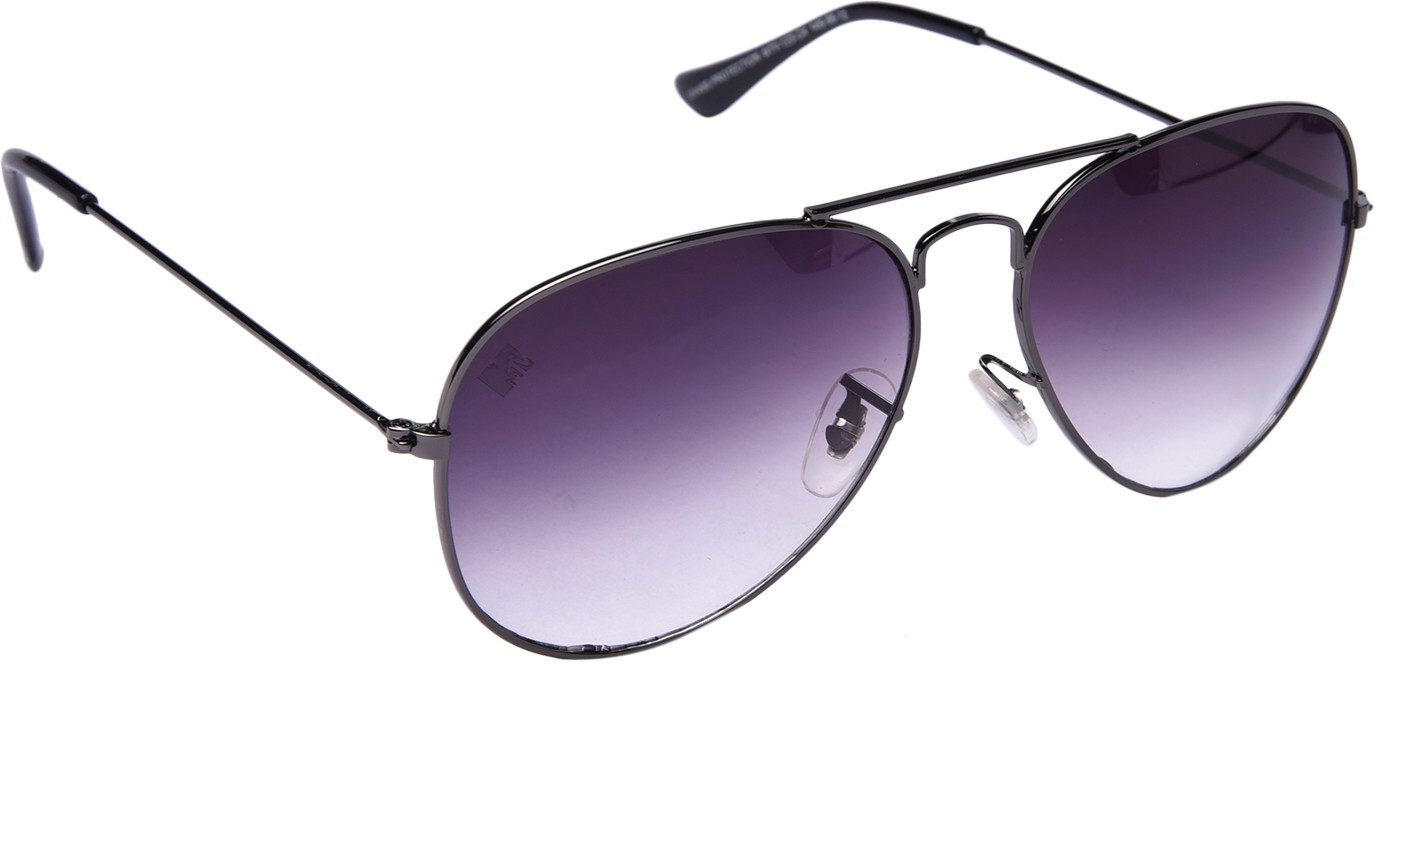 Deals - Delhi - Fastrack, Image... <br> Sunglasses<br> Category - sunglasses<br> Business - Flipkart.com